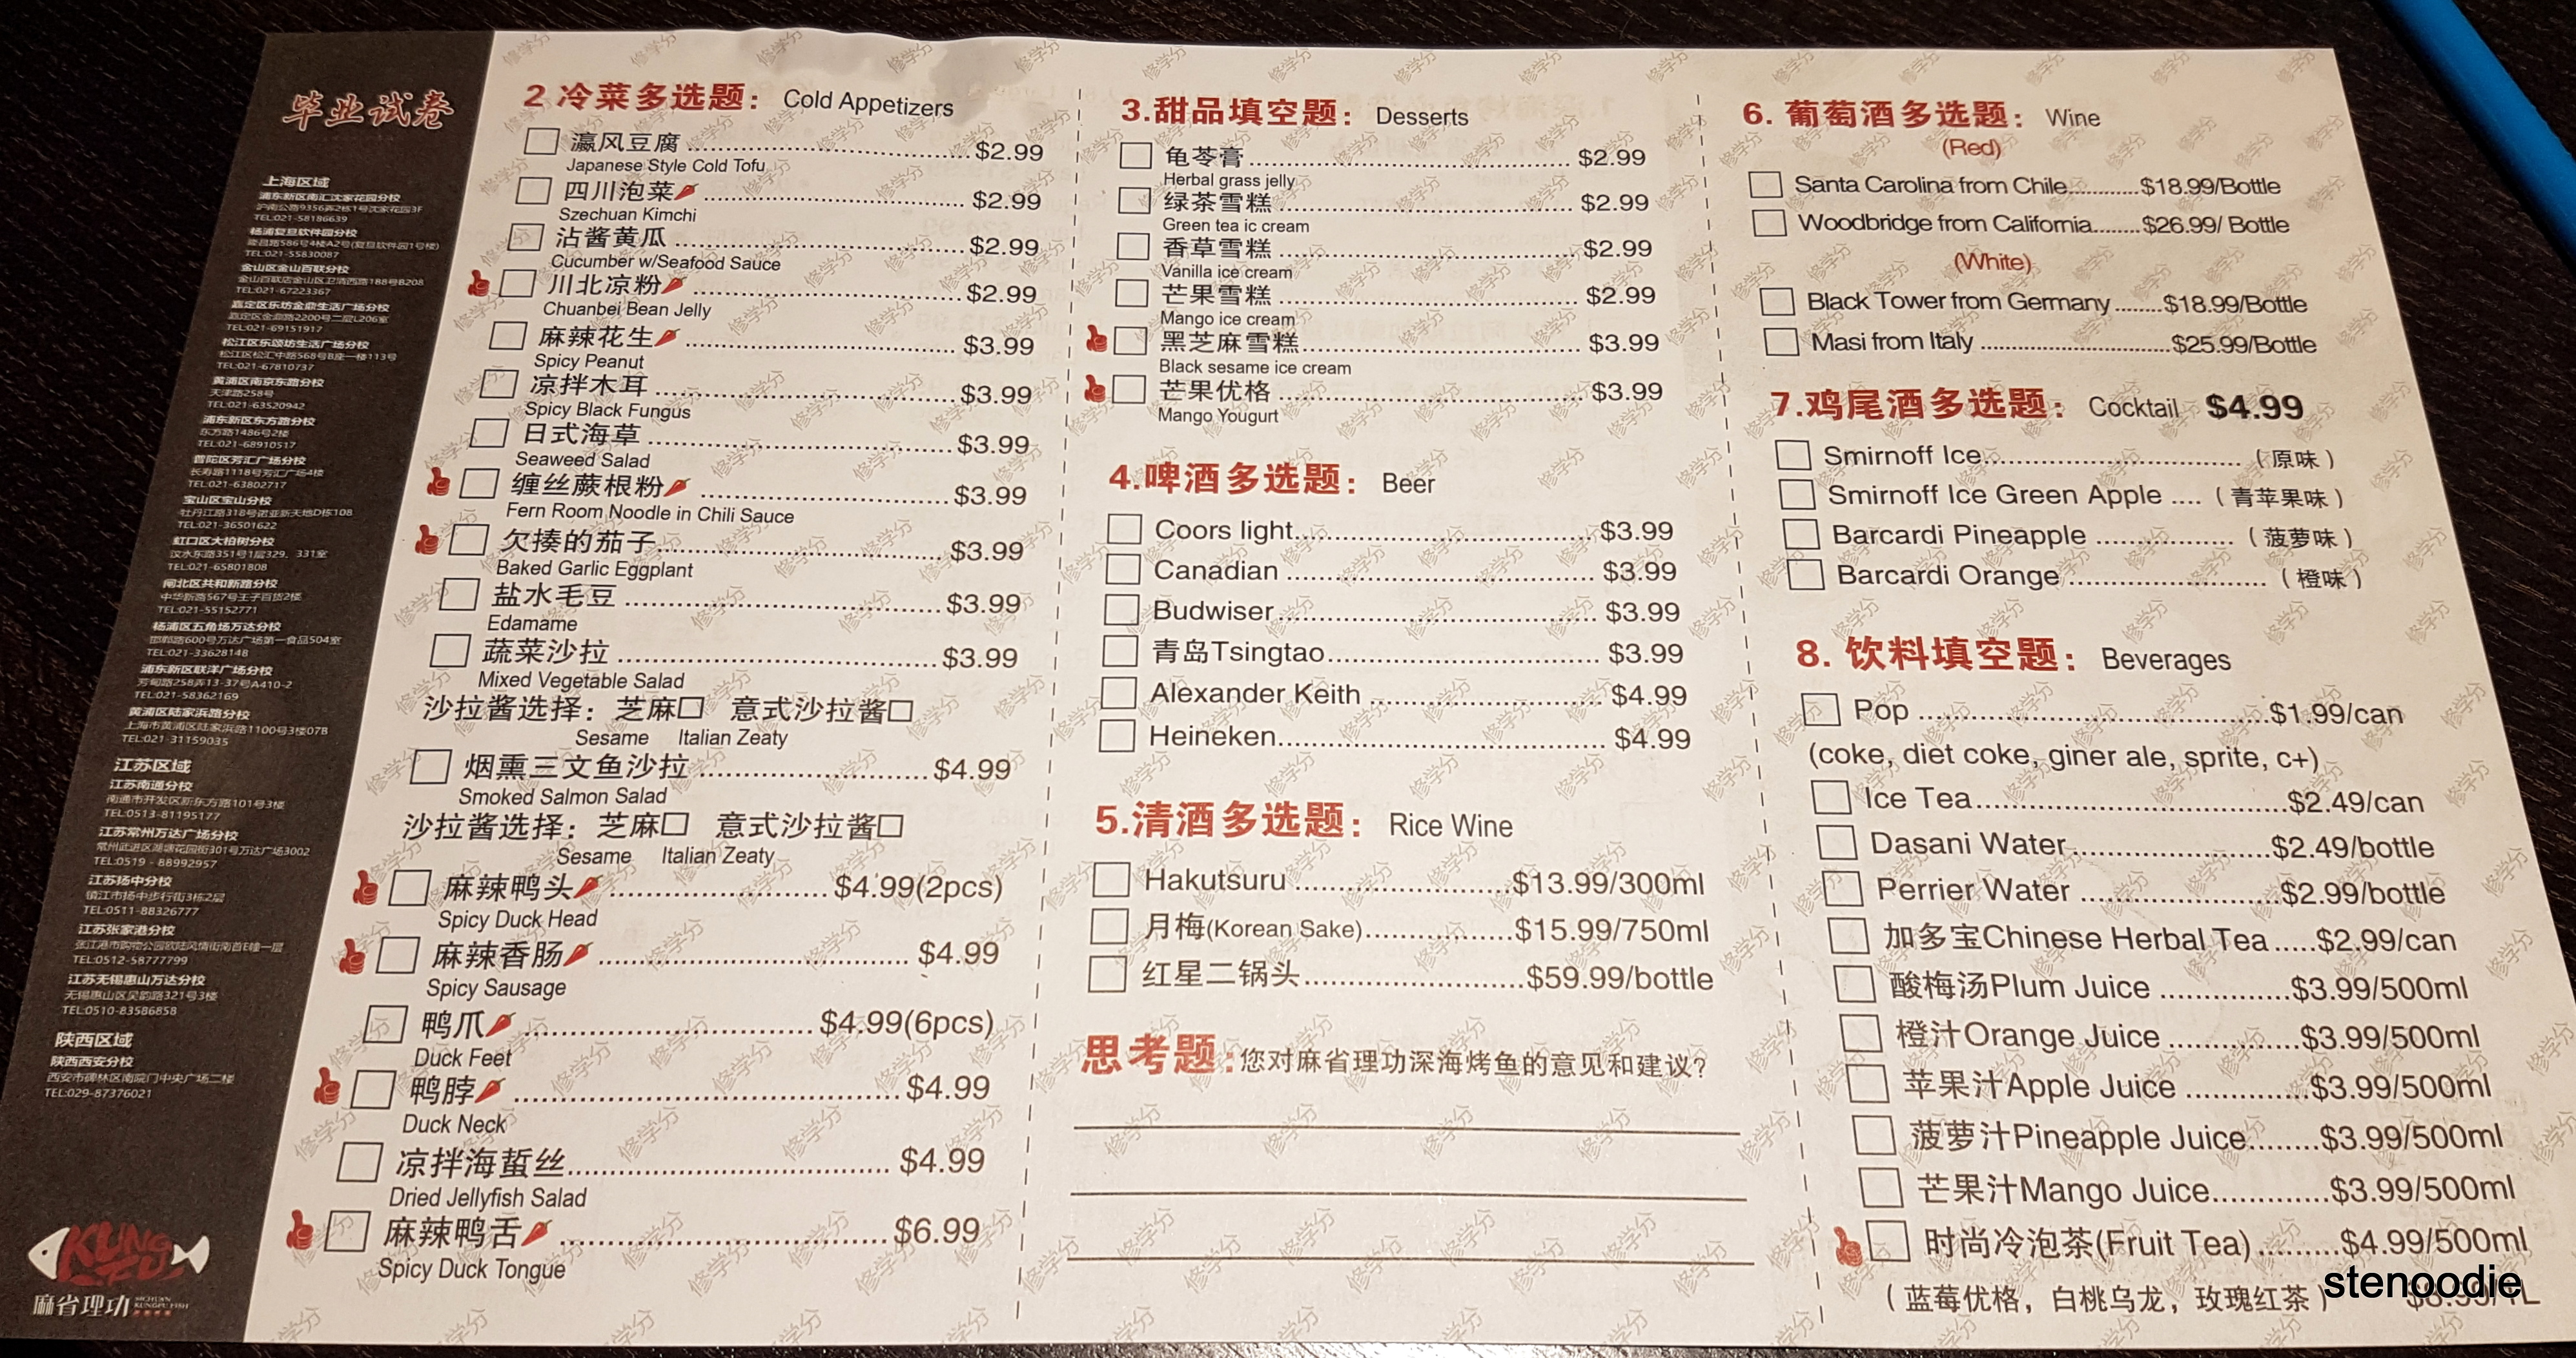 Sichuan Kungfu Fish menu and prices